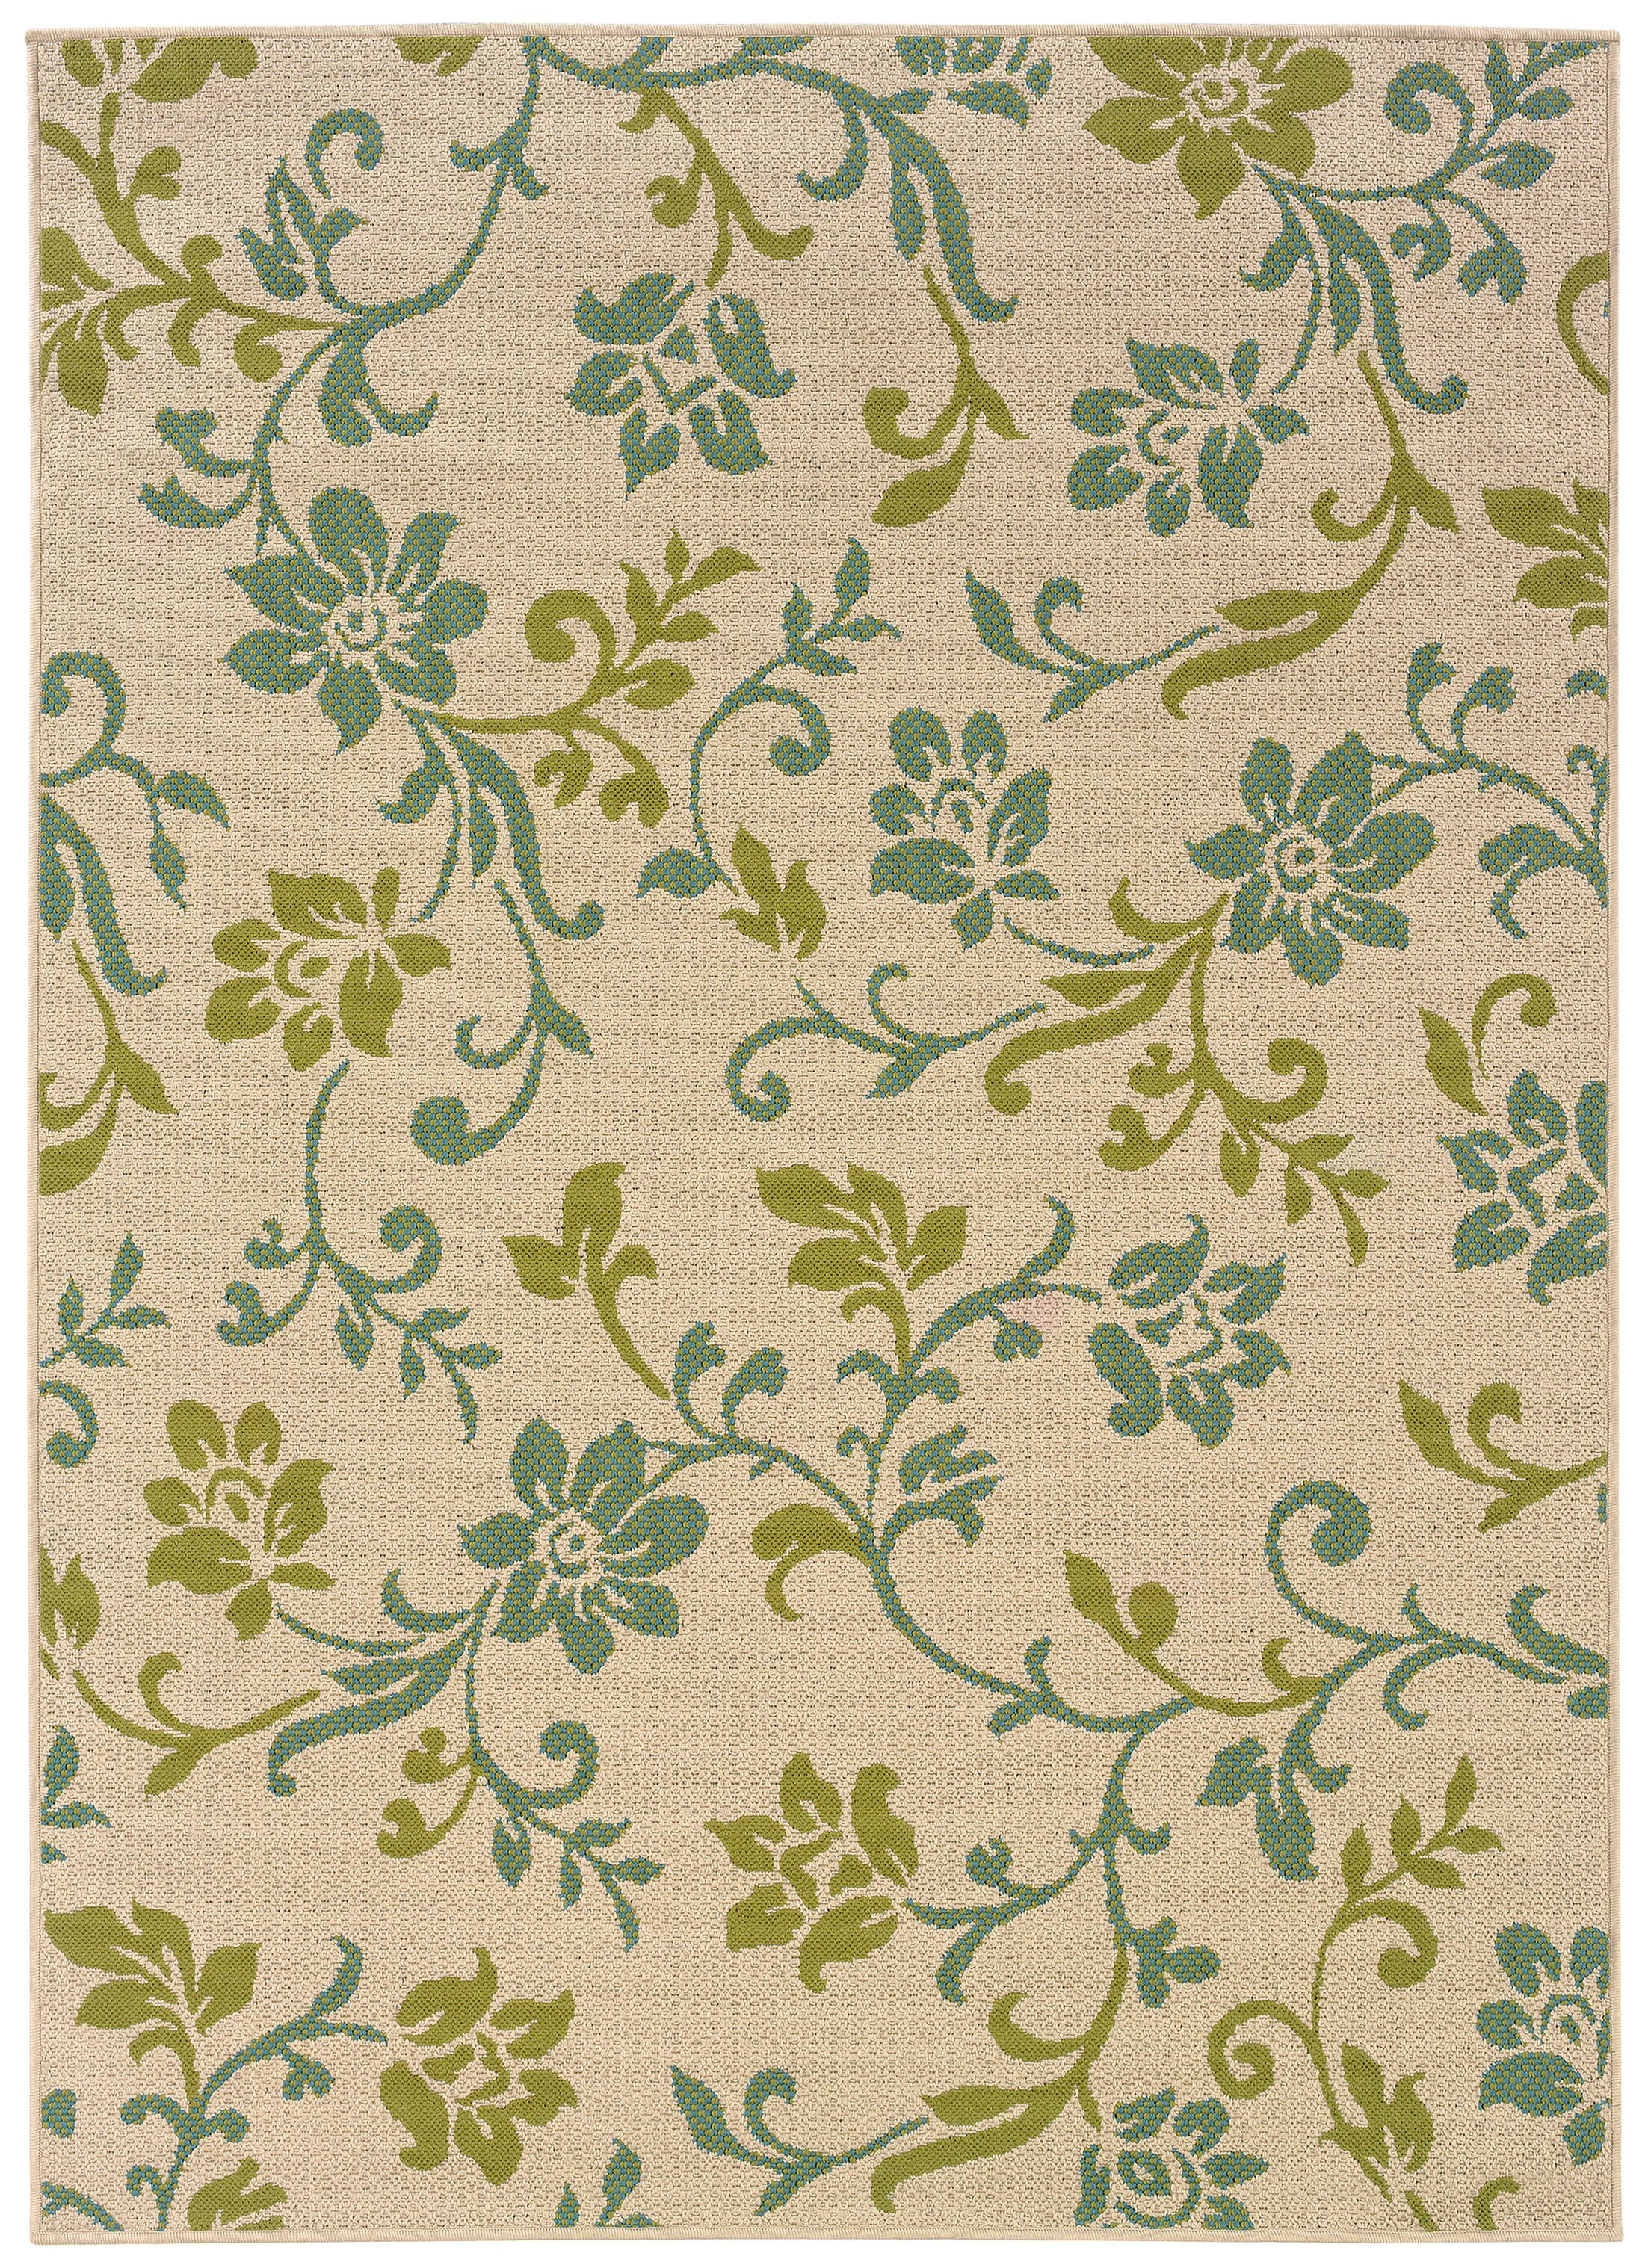 Newfield Ivory/Green Indoor/Outdoor Area Rug Rug Size: Rectangle 7'10